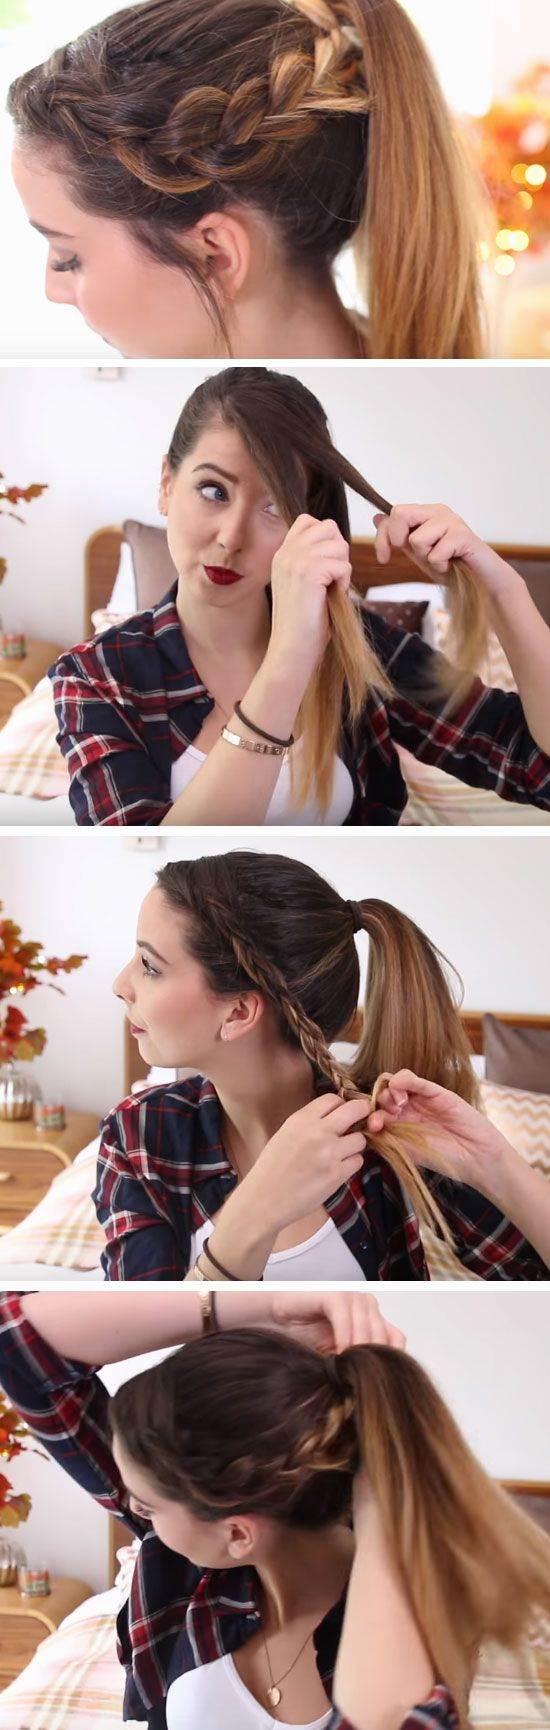 Dutch Braid into Pony | DIY Heatless Hairstyles for Long Hair that will take you from day to night